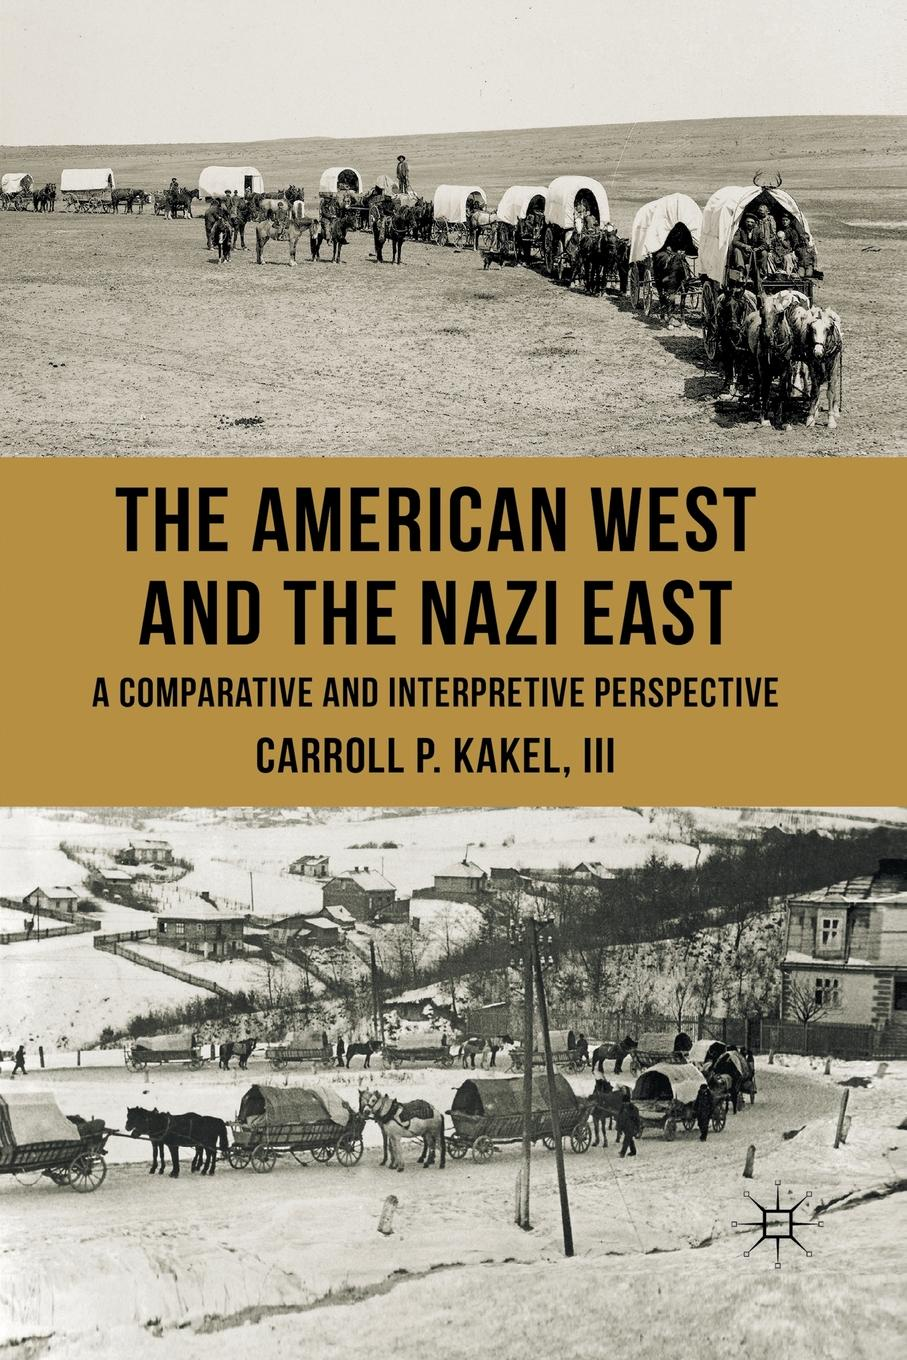 C. Kakel The American West and the Nazi East. A Comparative and Interpretive Perspective c kakel the american west and the nazi east a comparative and interpretive perspective